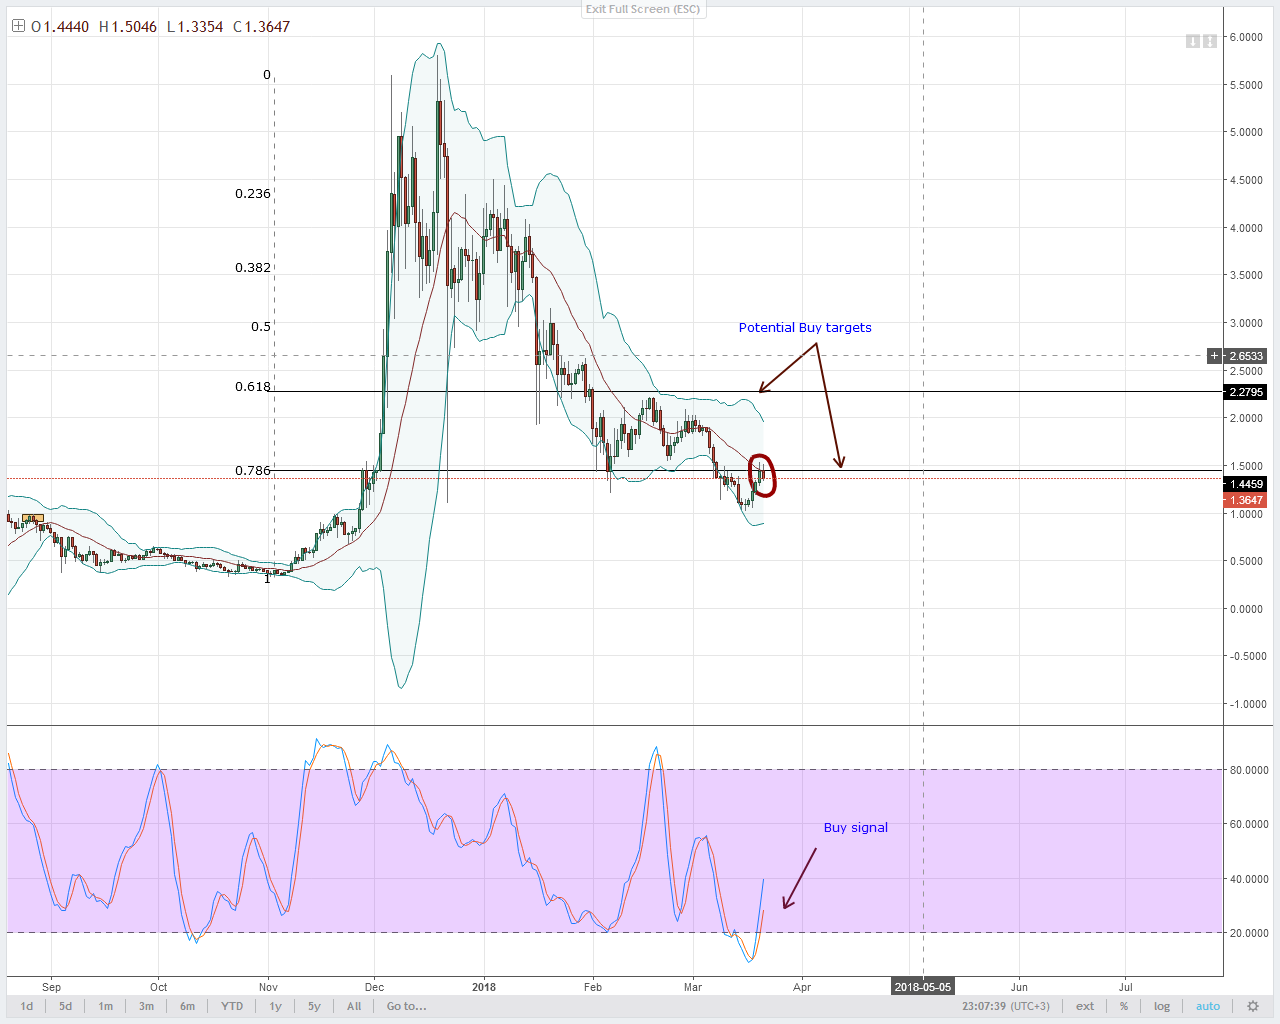 IOTA Technical Analysis